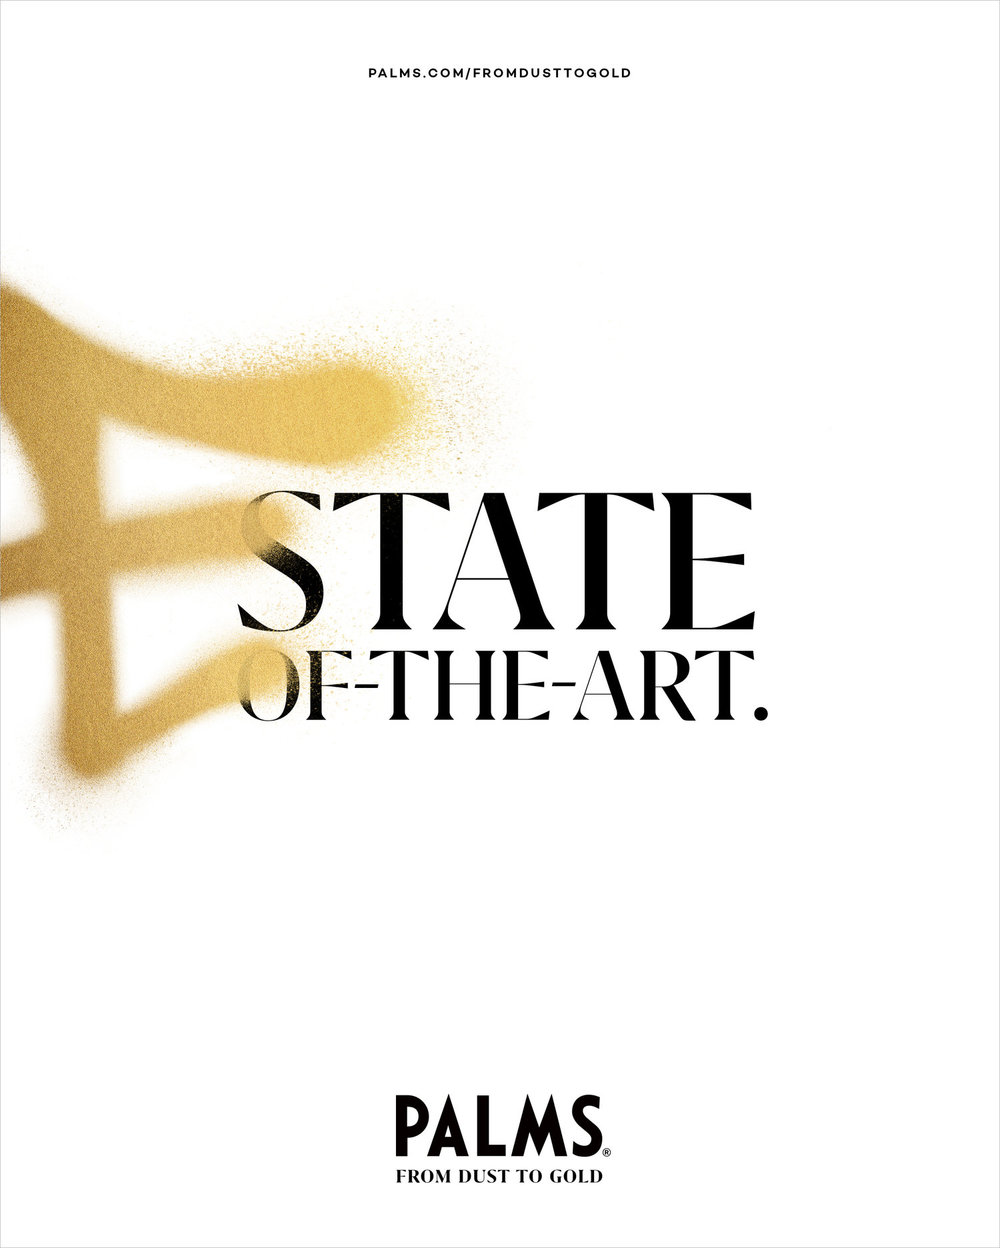 7_Palms-Print-Sate+of+the+Art+copy.jpg